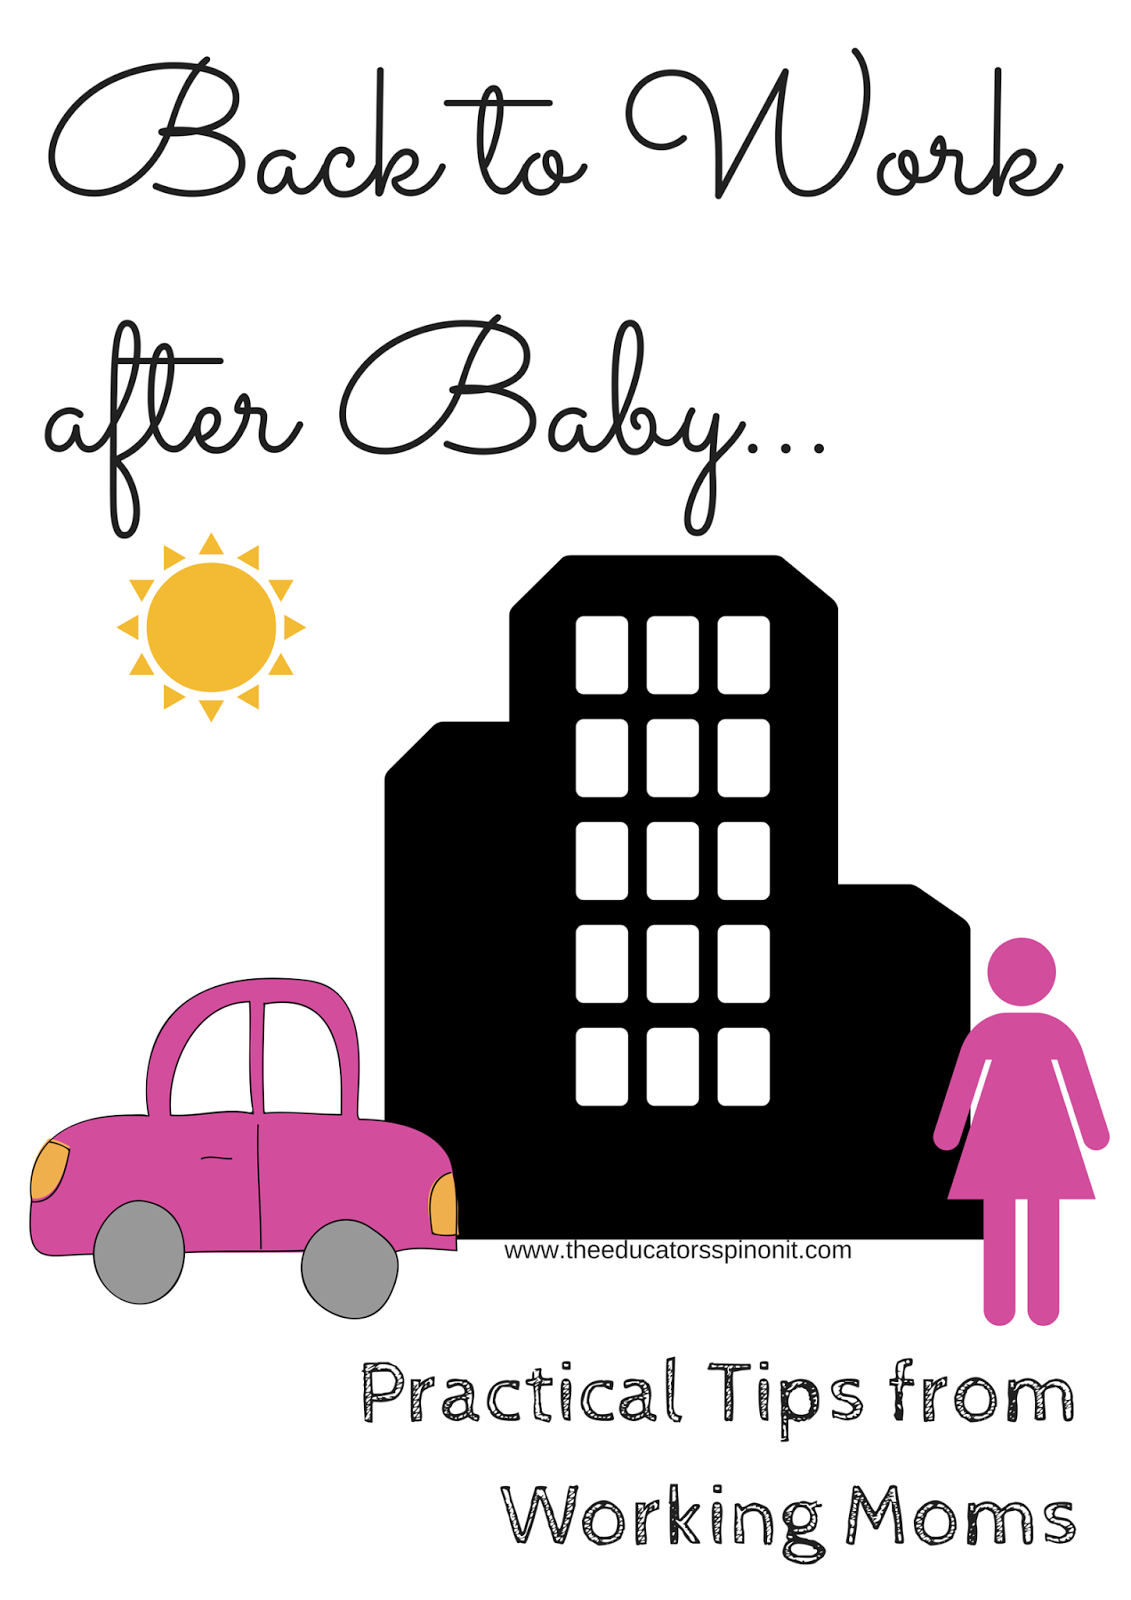 Back to work after baby: practical tips from working moms.